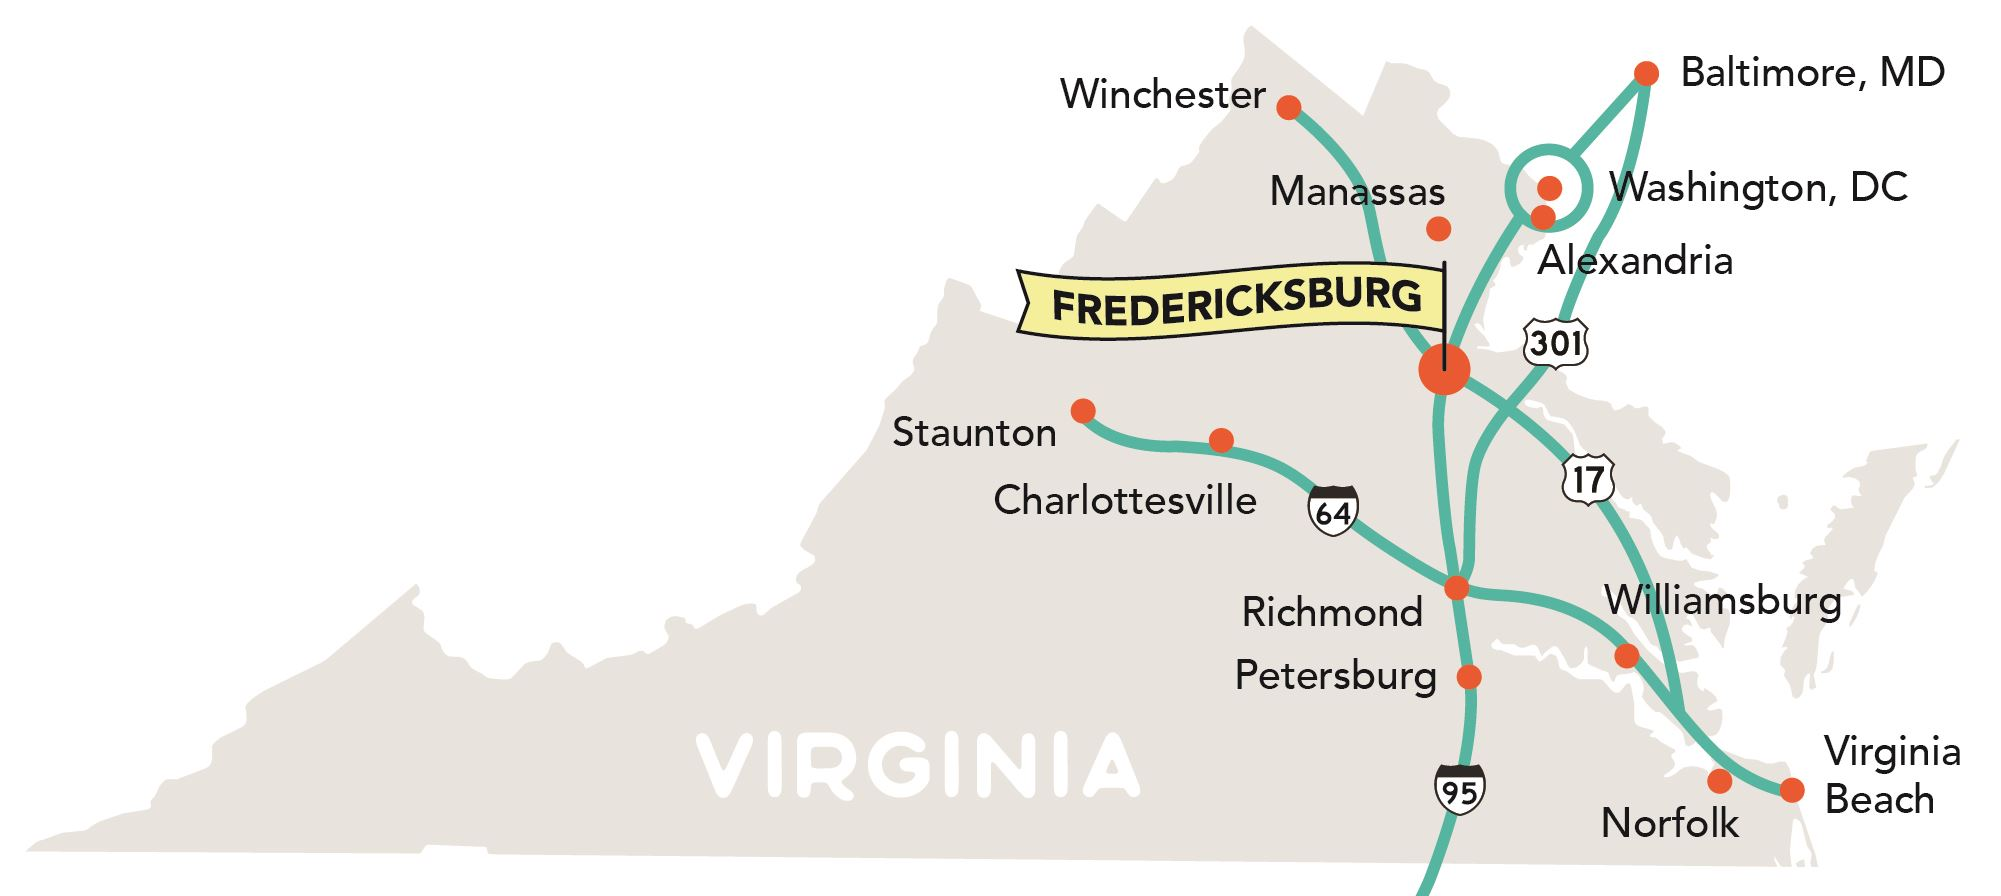 Community Profile Fredericksburg Economic Development How The States Are Interrelated Is Shown In Statechart Diagram Related Documents